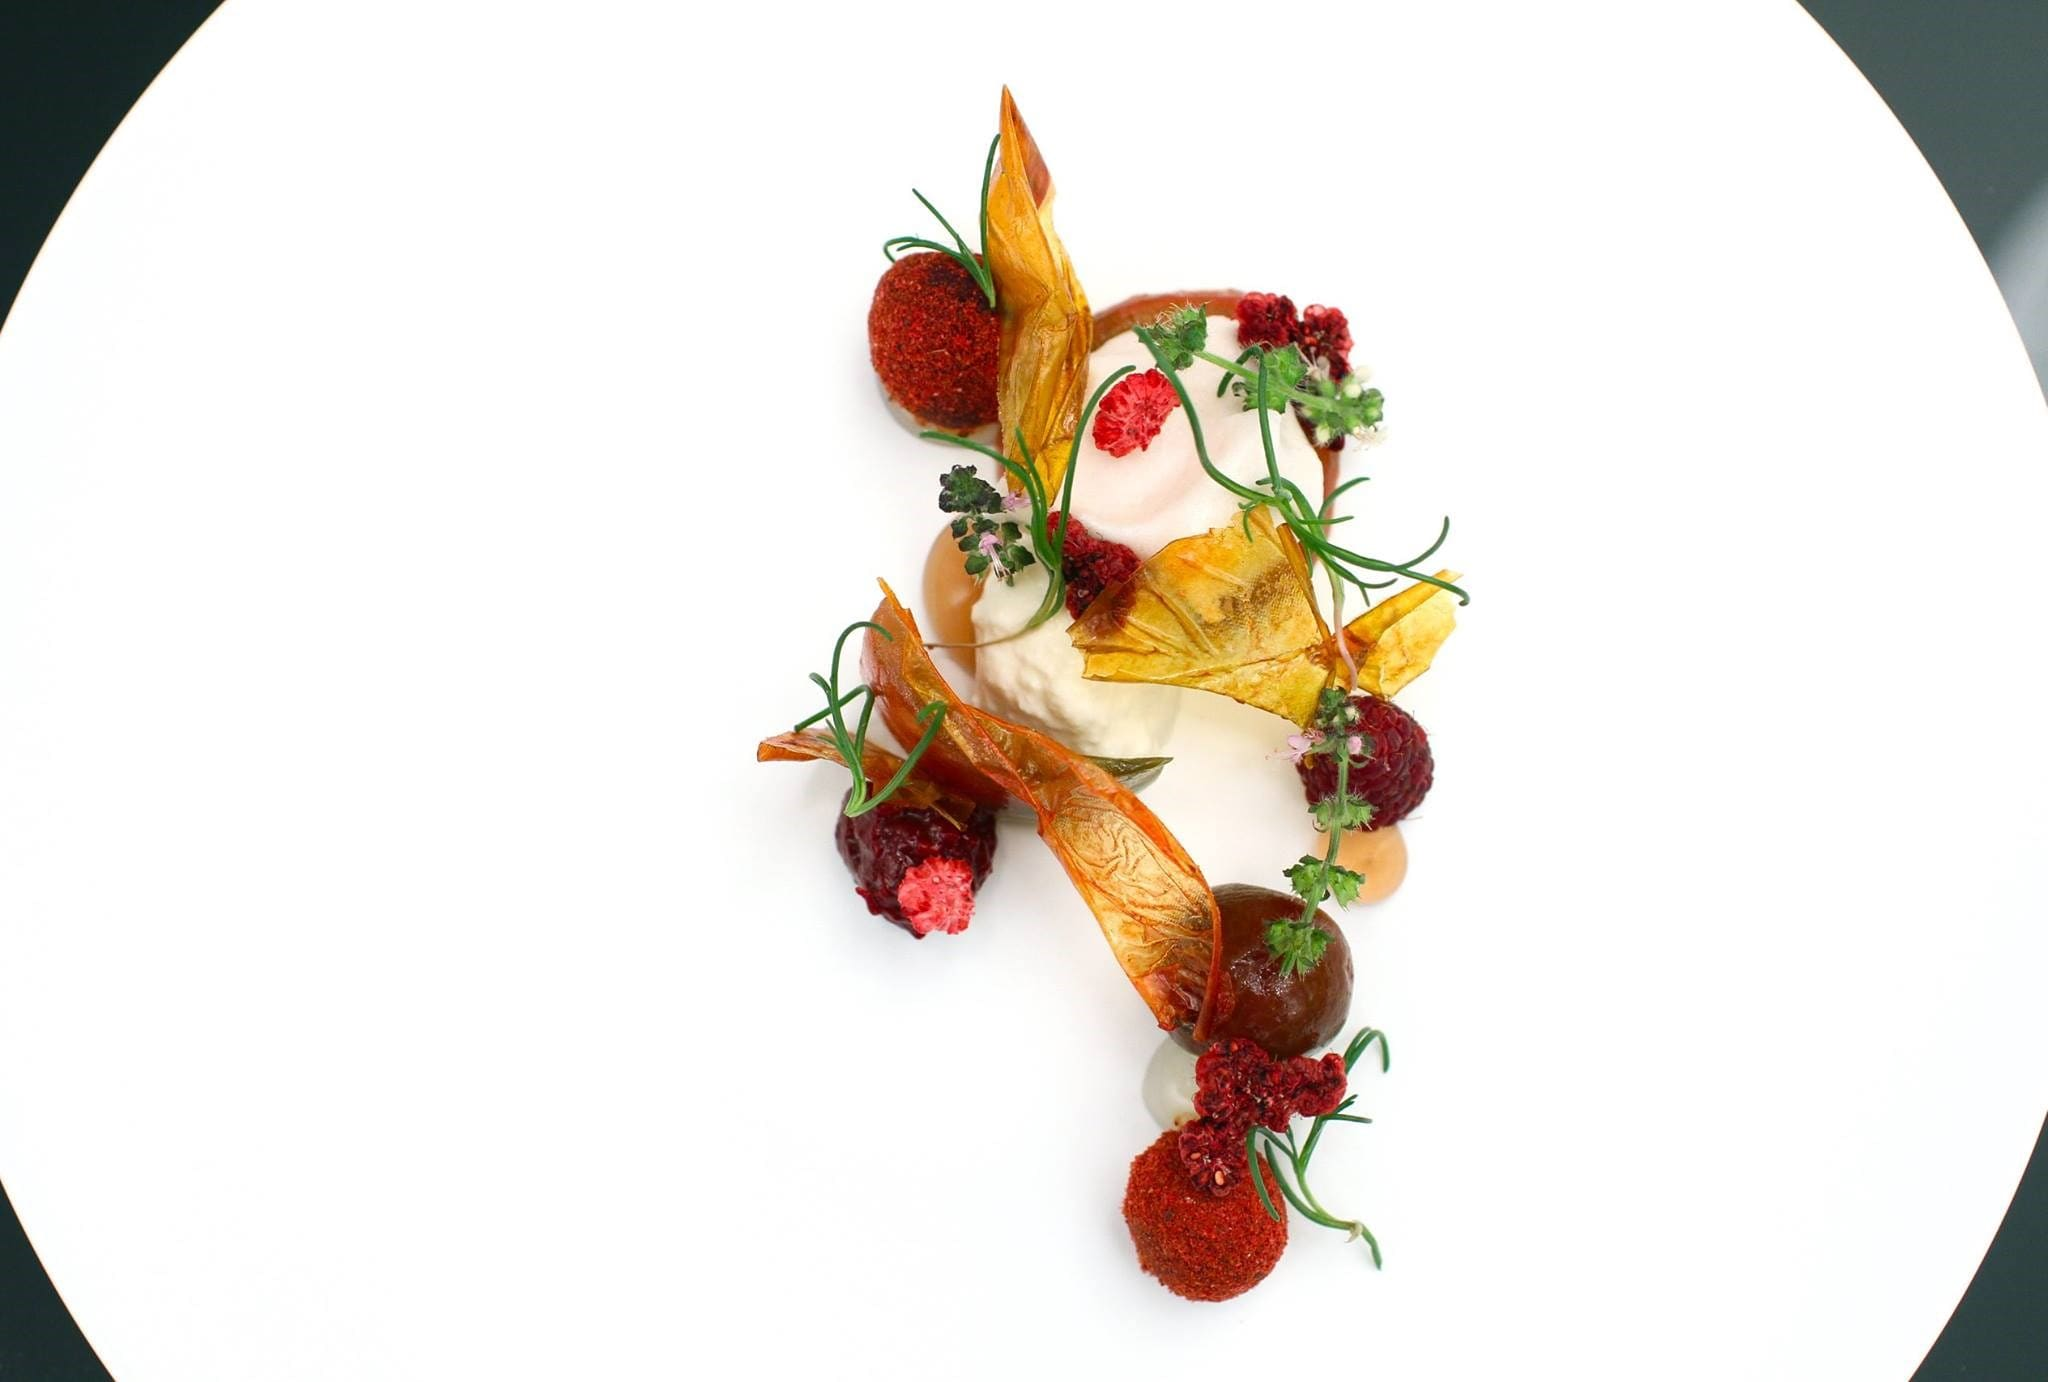 heirloom-tomato-raspberry-burrata-clobe-basil-grace